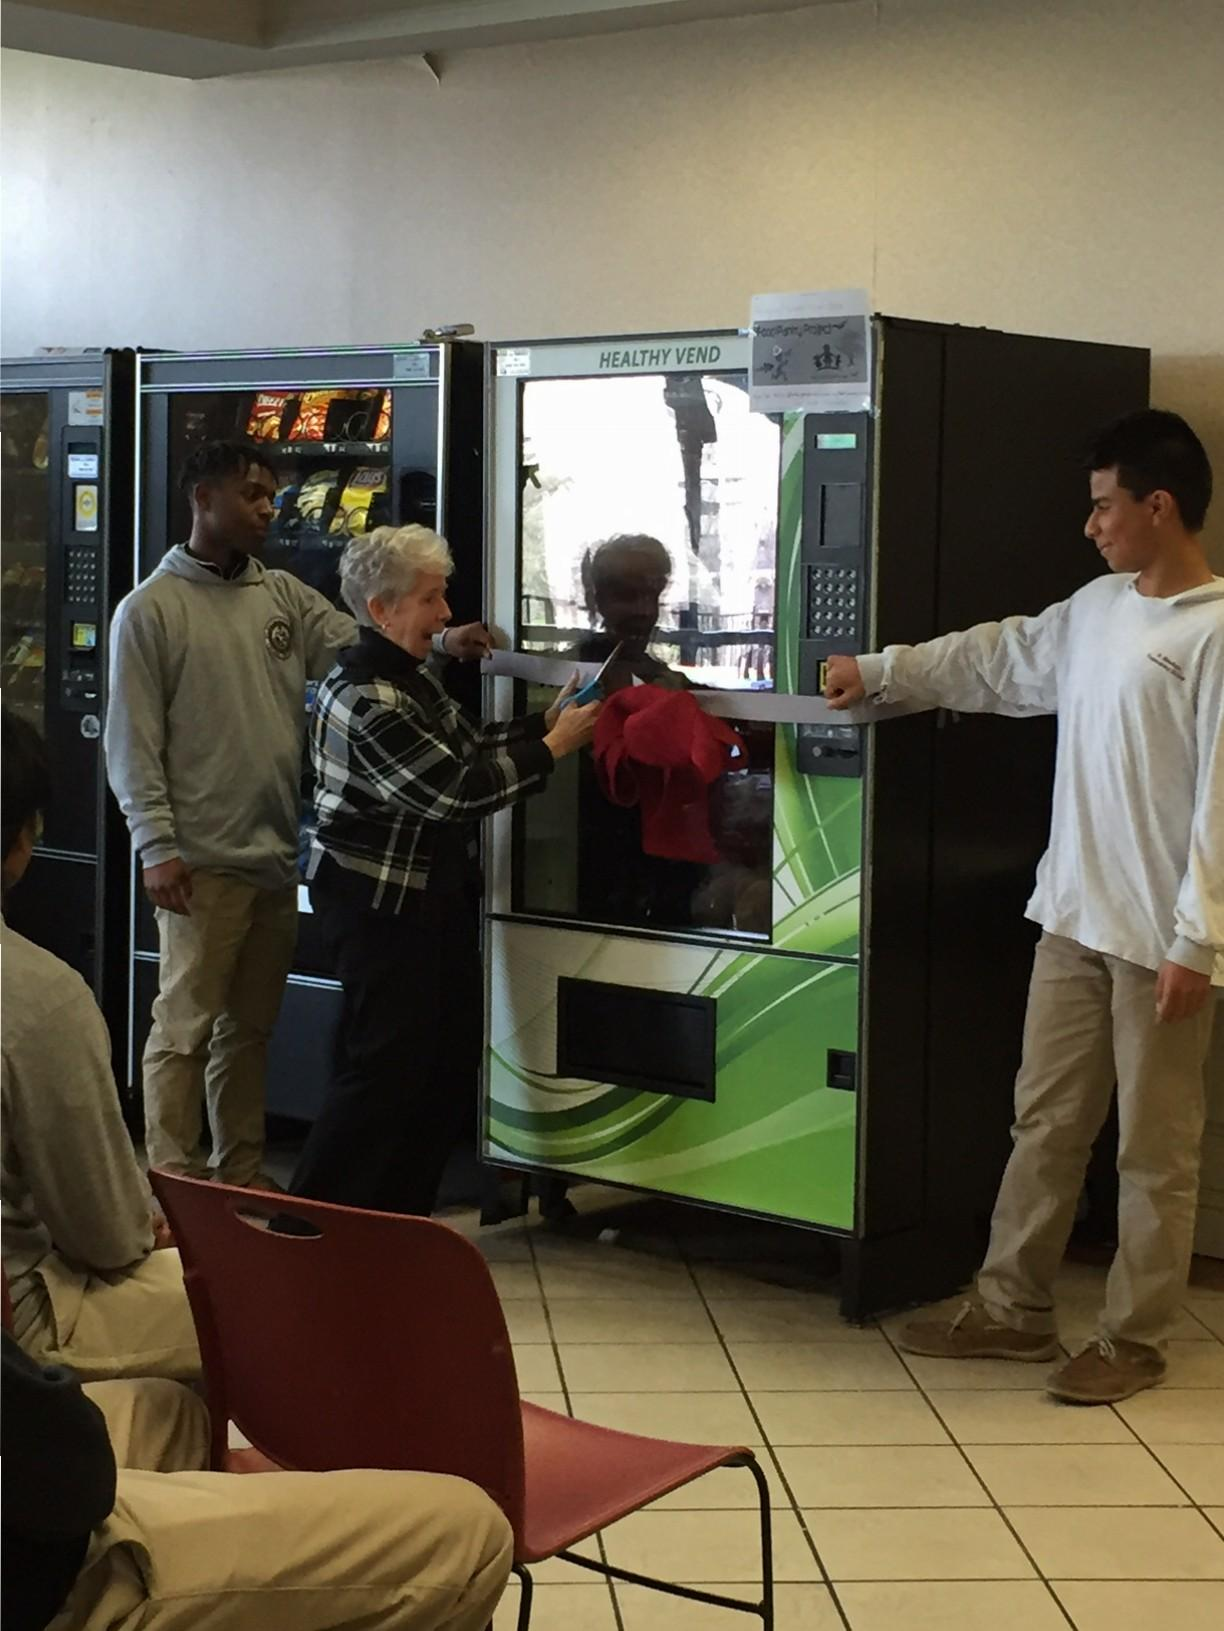 Sister Linda stands with freshman to celebrate the new vending machine. Eighty percent of the proceeds will go to the food pantry.